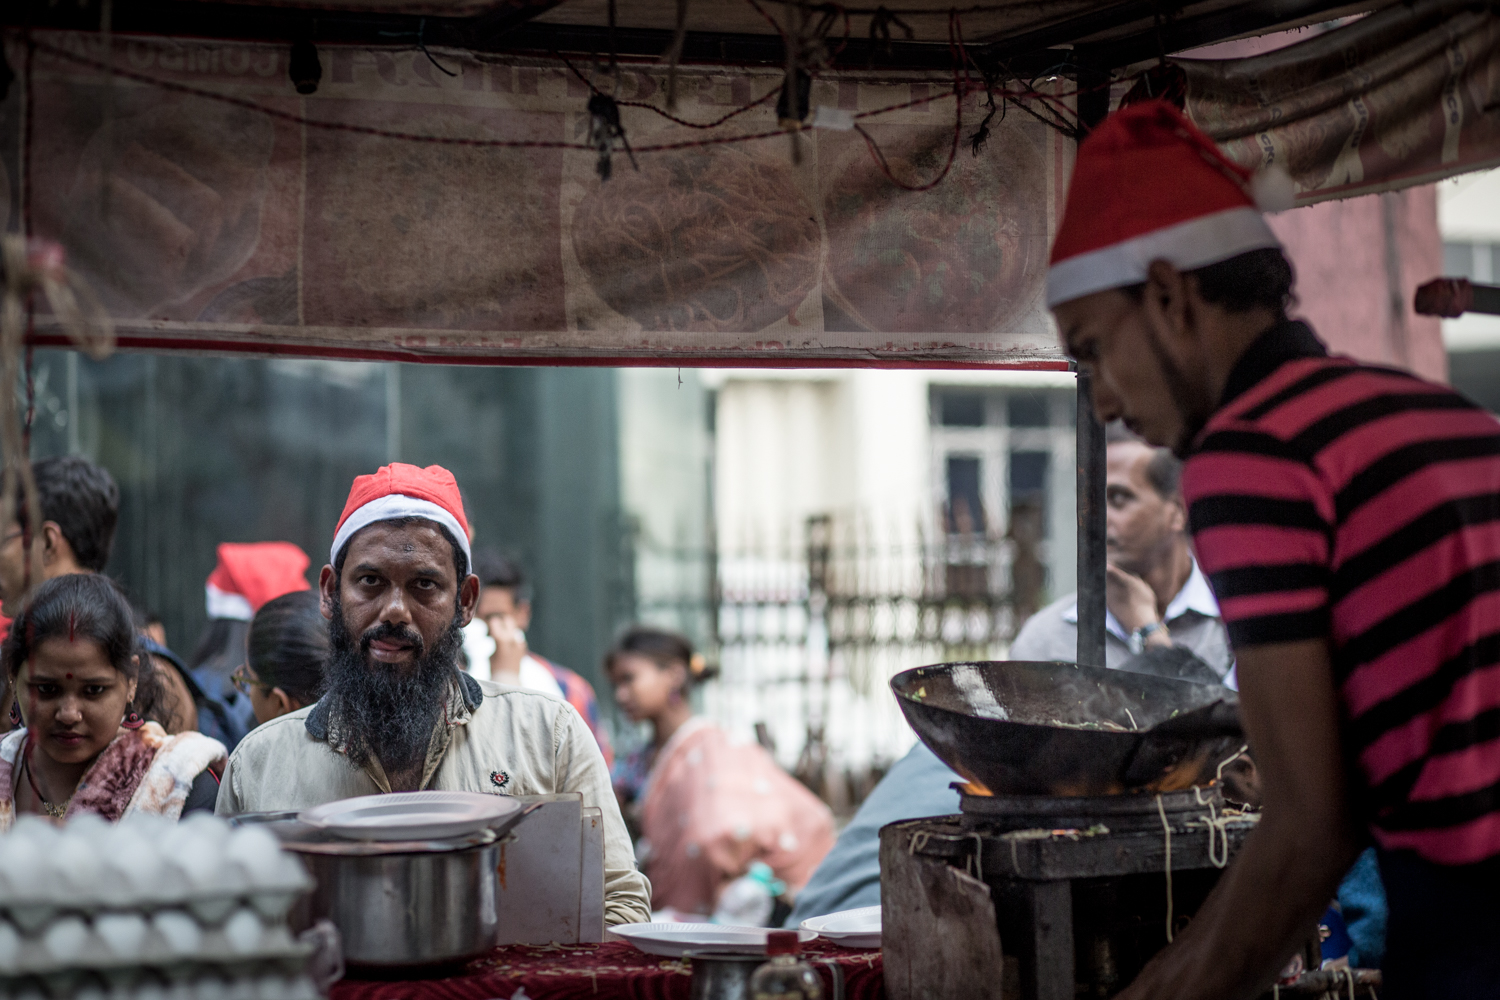 Street food stands, always popular in India, were especially busy on Christmas.